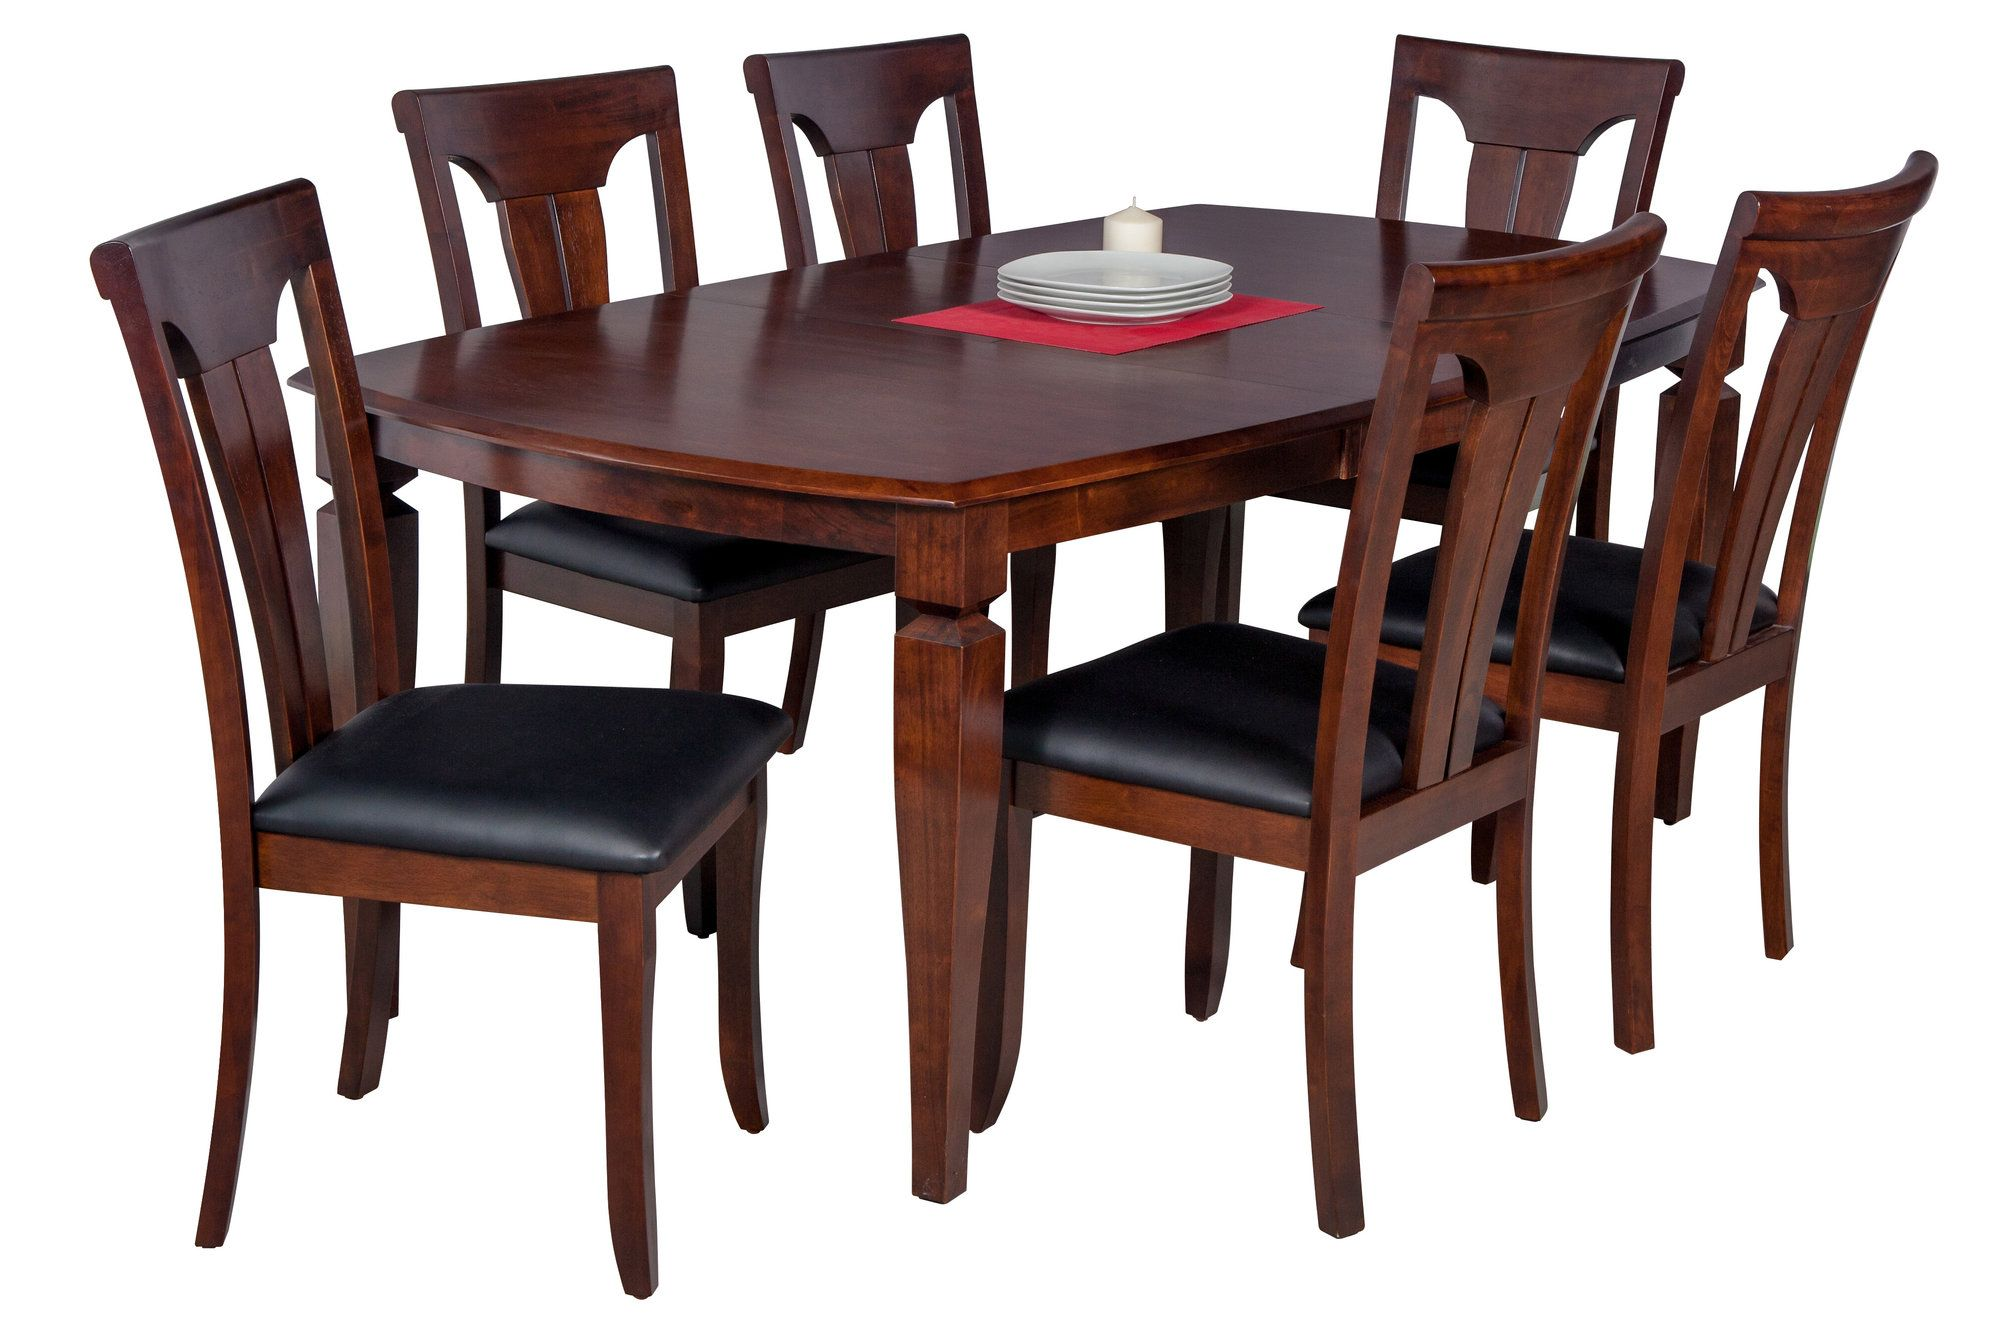 Victoria piece dining set products